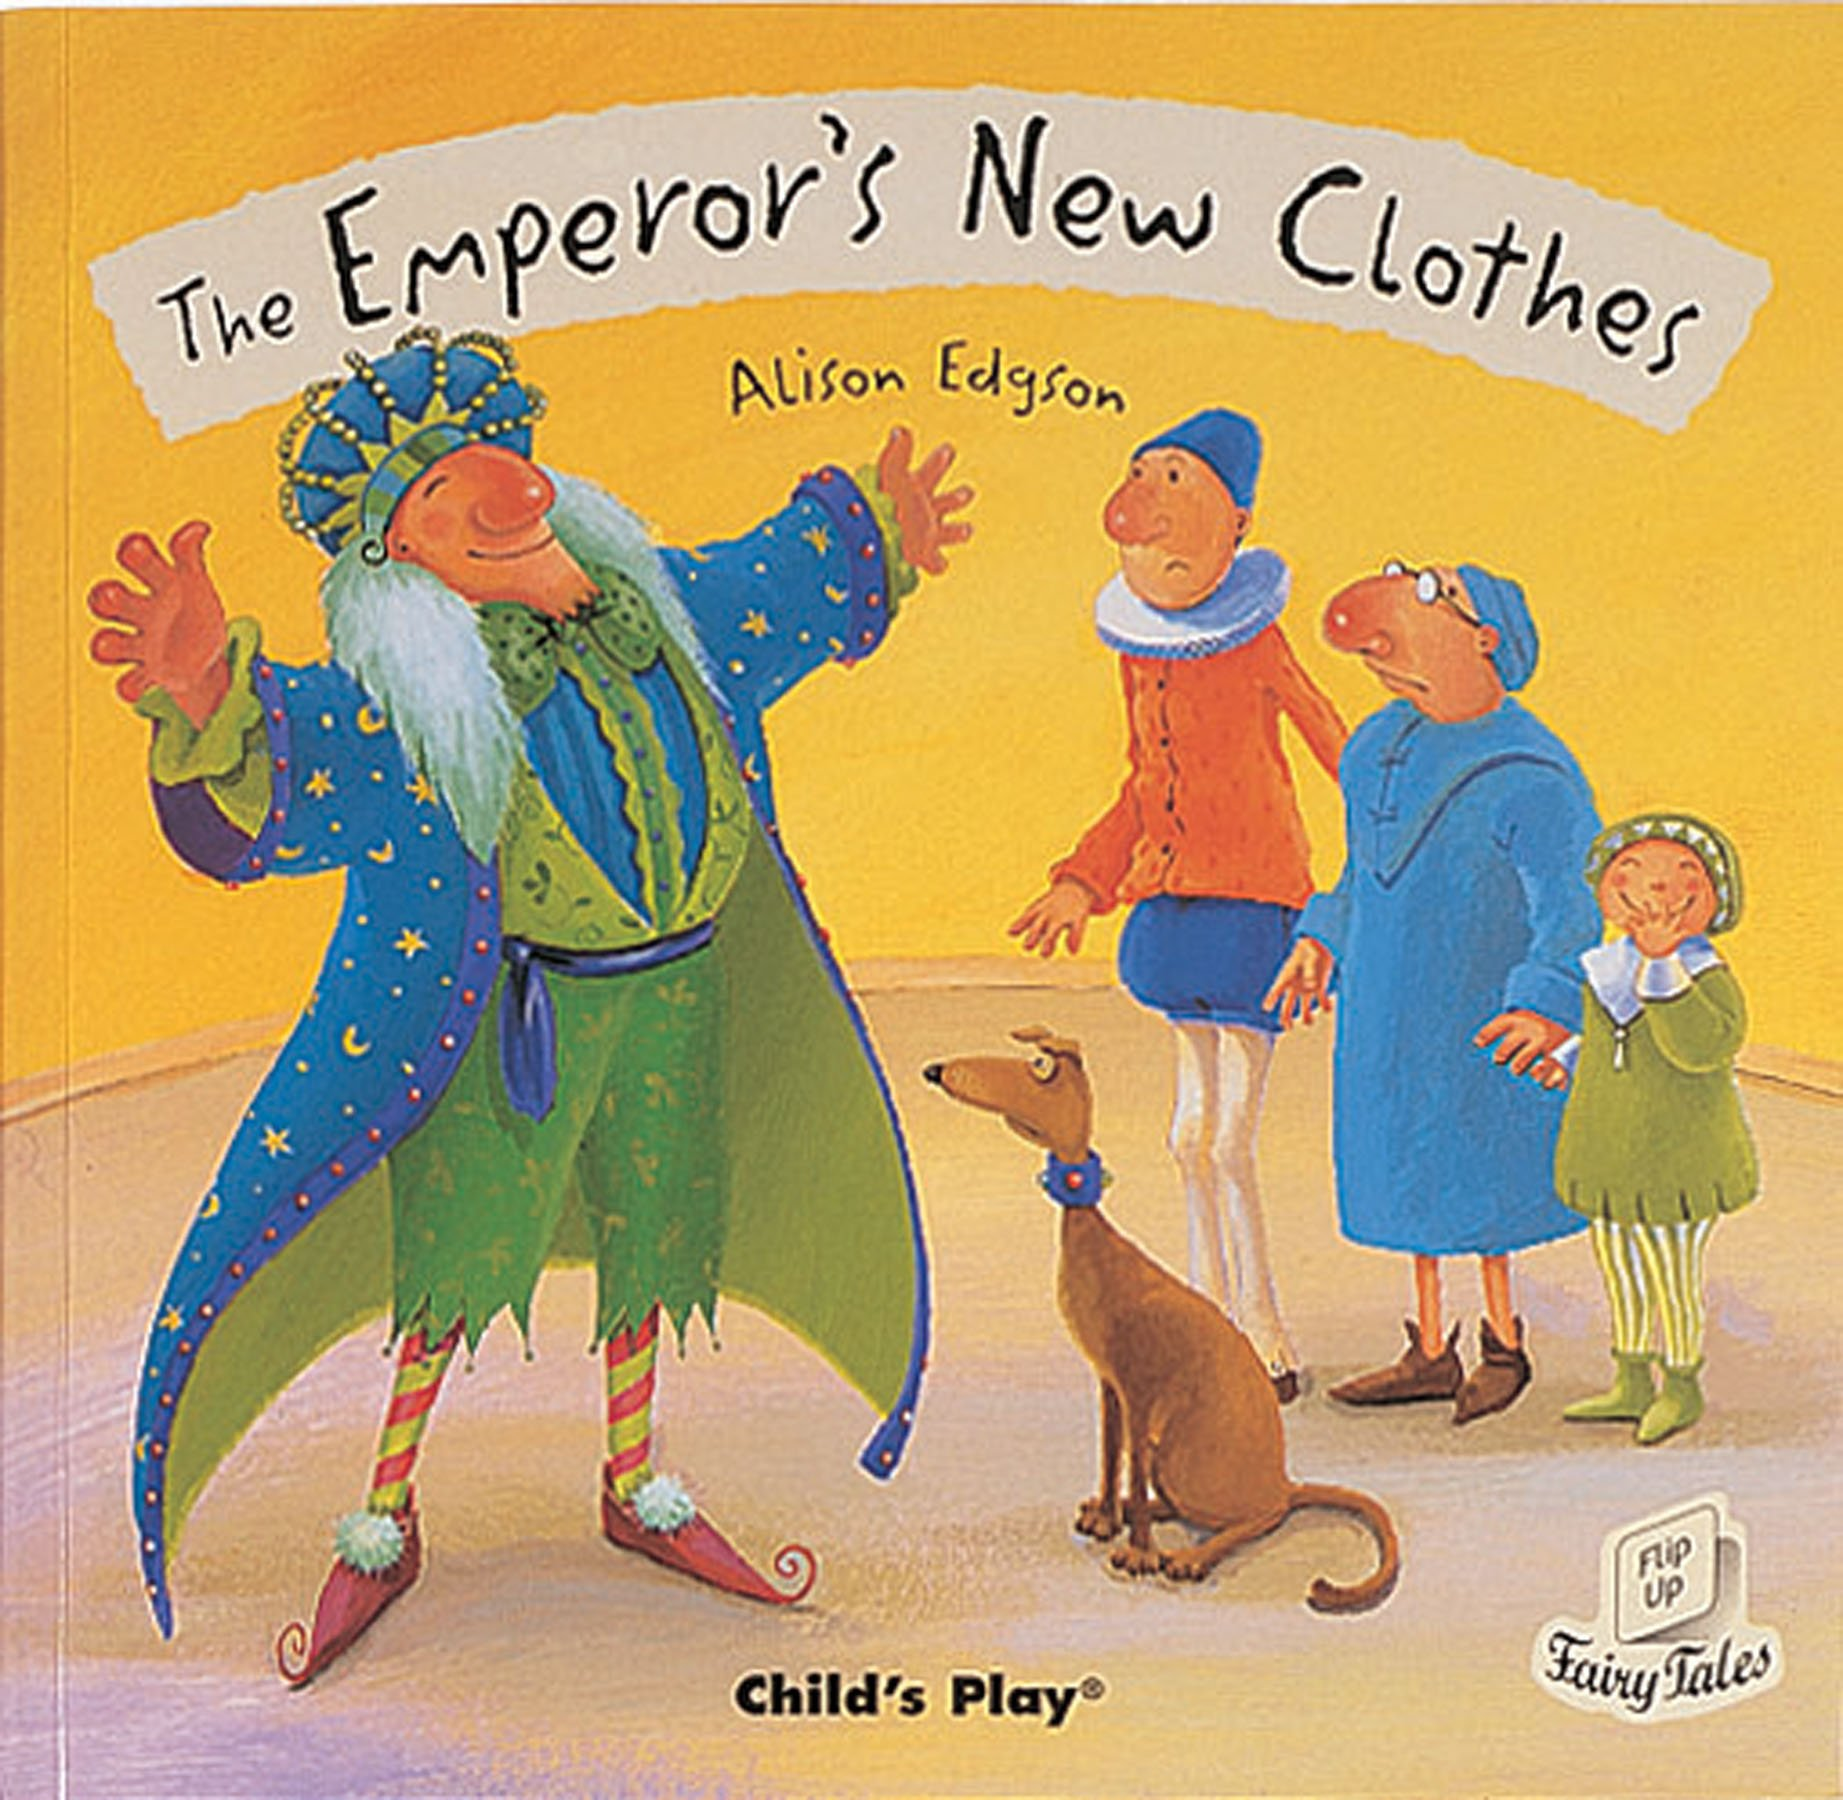 The Emperor's New Clothes (flip Up Fairy Tales): Alison Edgson:  9781846430206: Amazon: Books